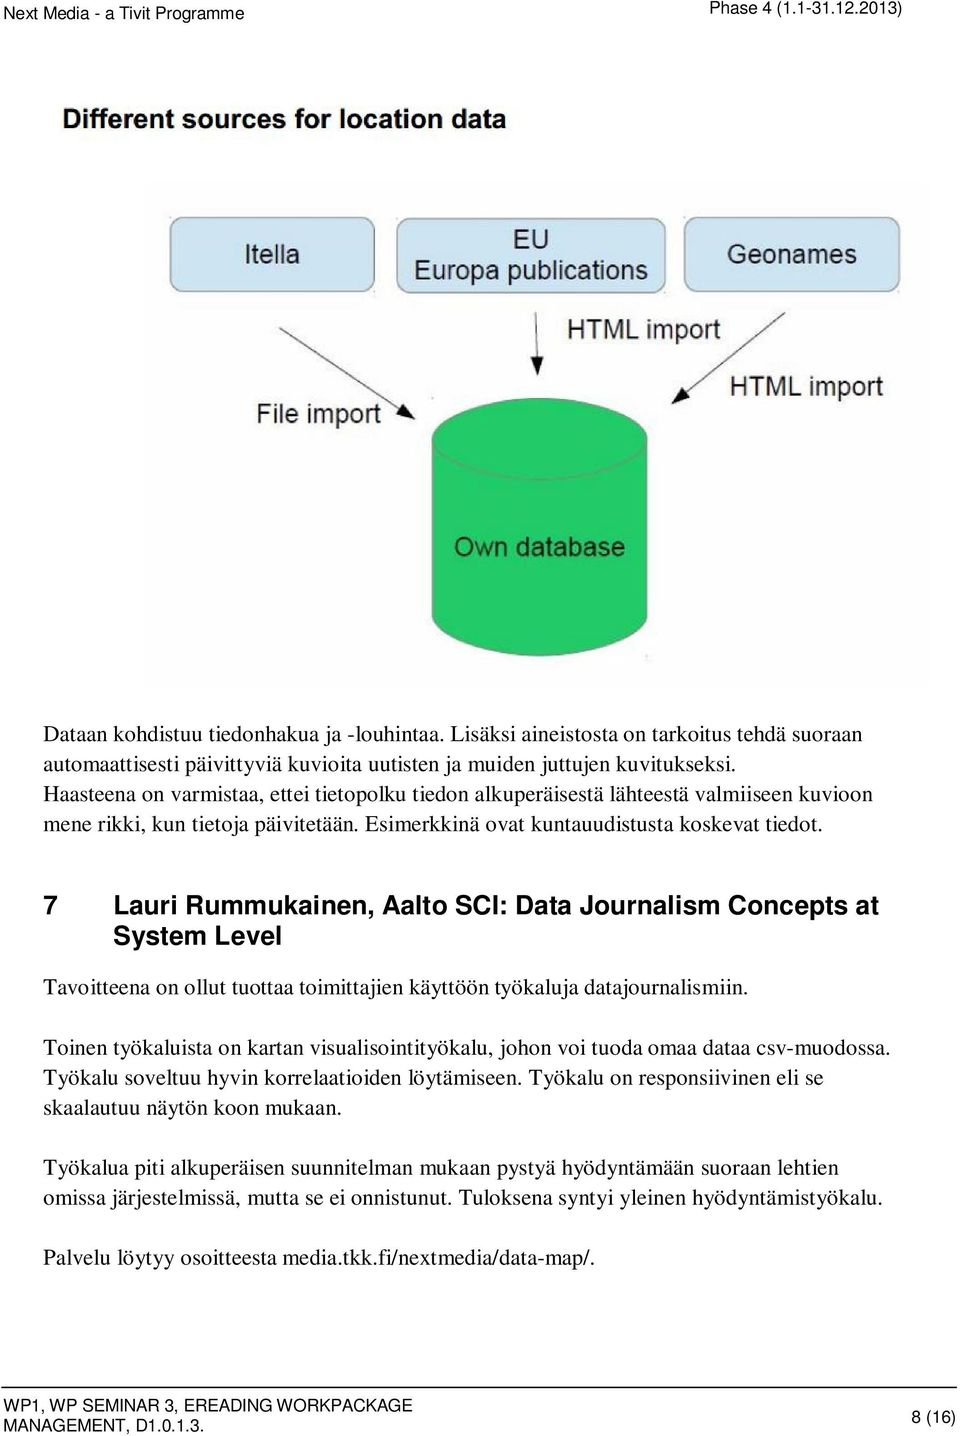 7 Lauri Rummukainen, Aalto SCI: Data Journalism Concepts at System Level Tavoitteena on ollut tuottaa toimittajien käyttöön työkaluja datajournalismiin.